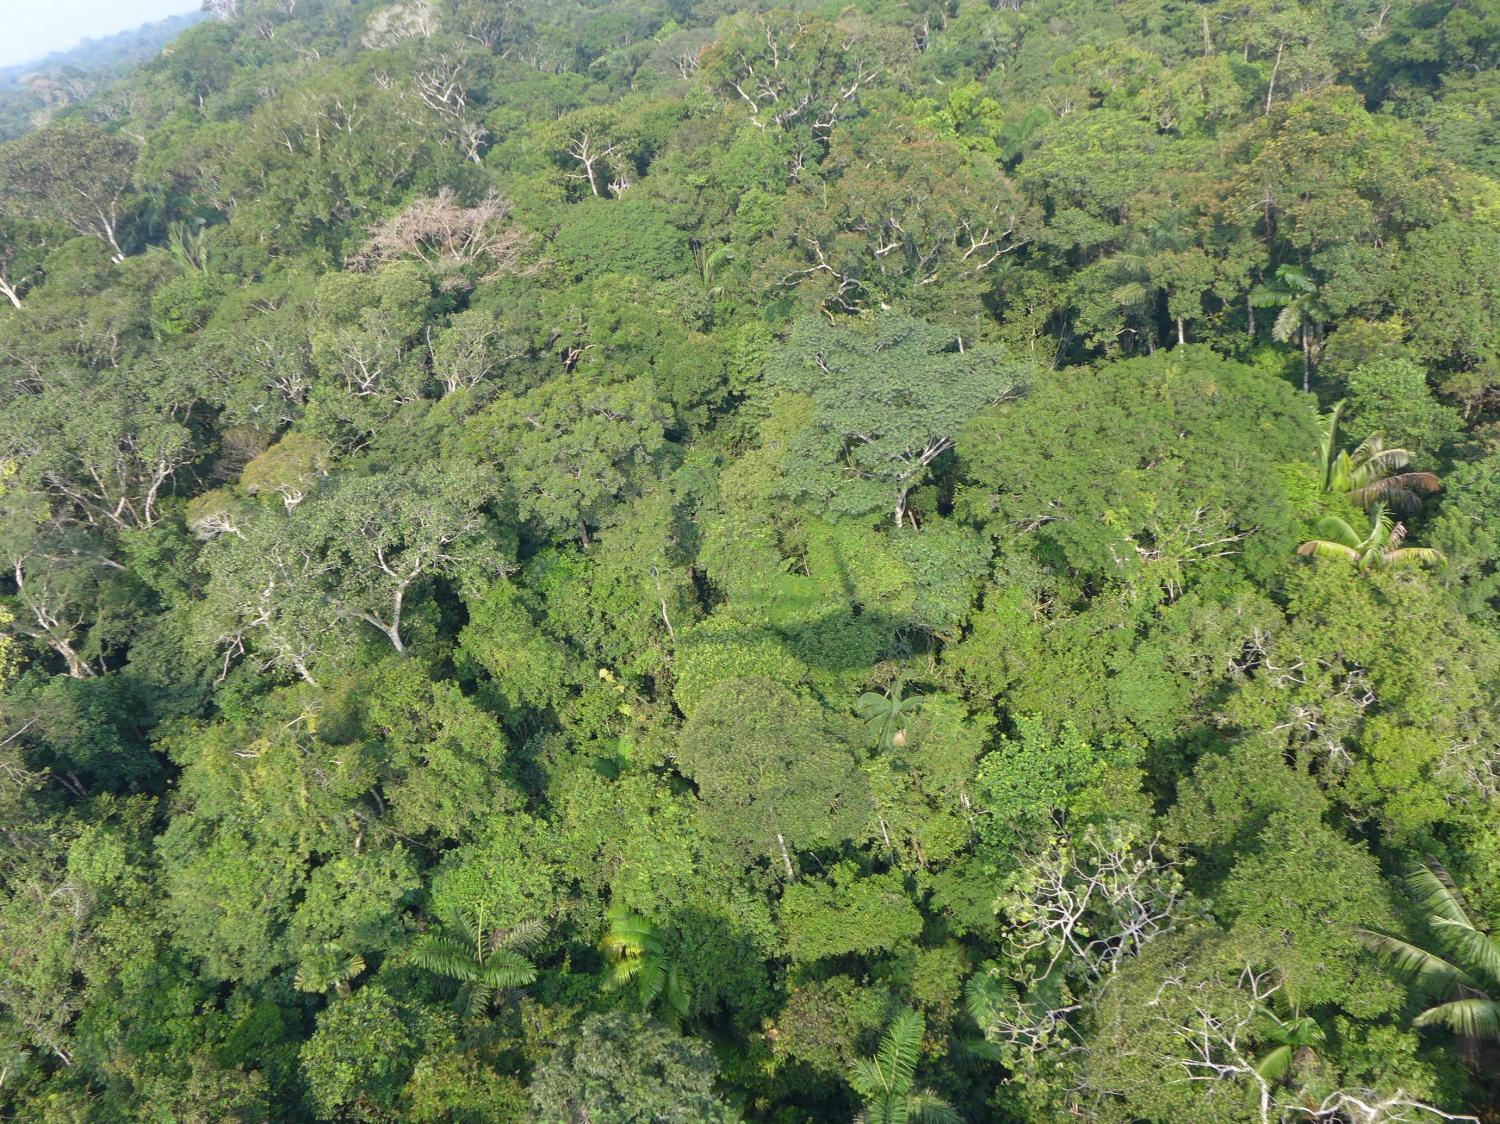 Amazon rainforest has from rare to very rare species of trees